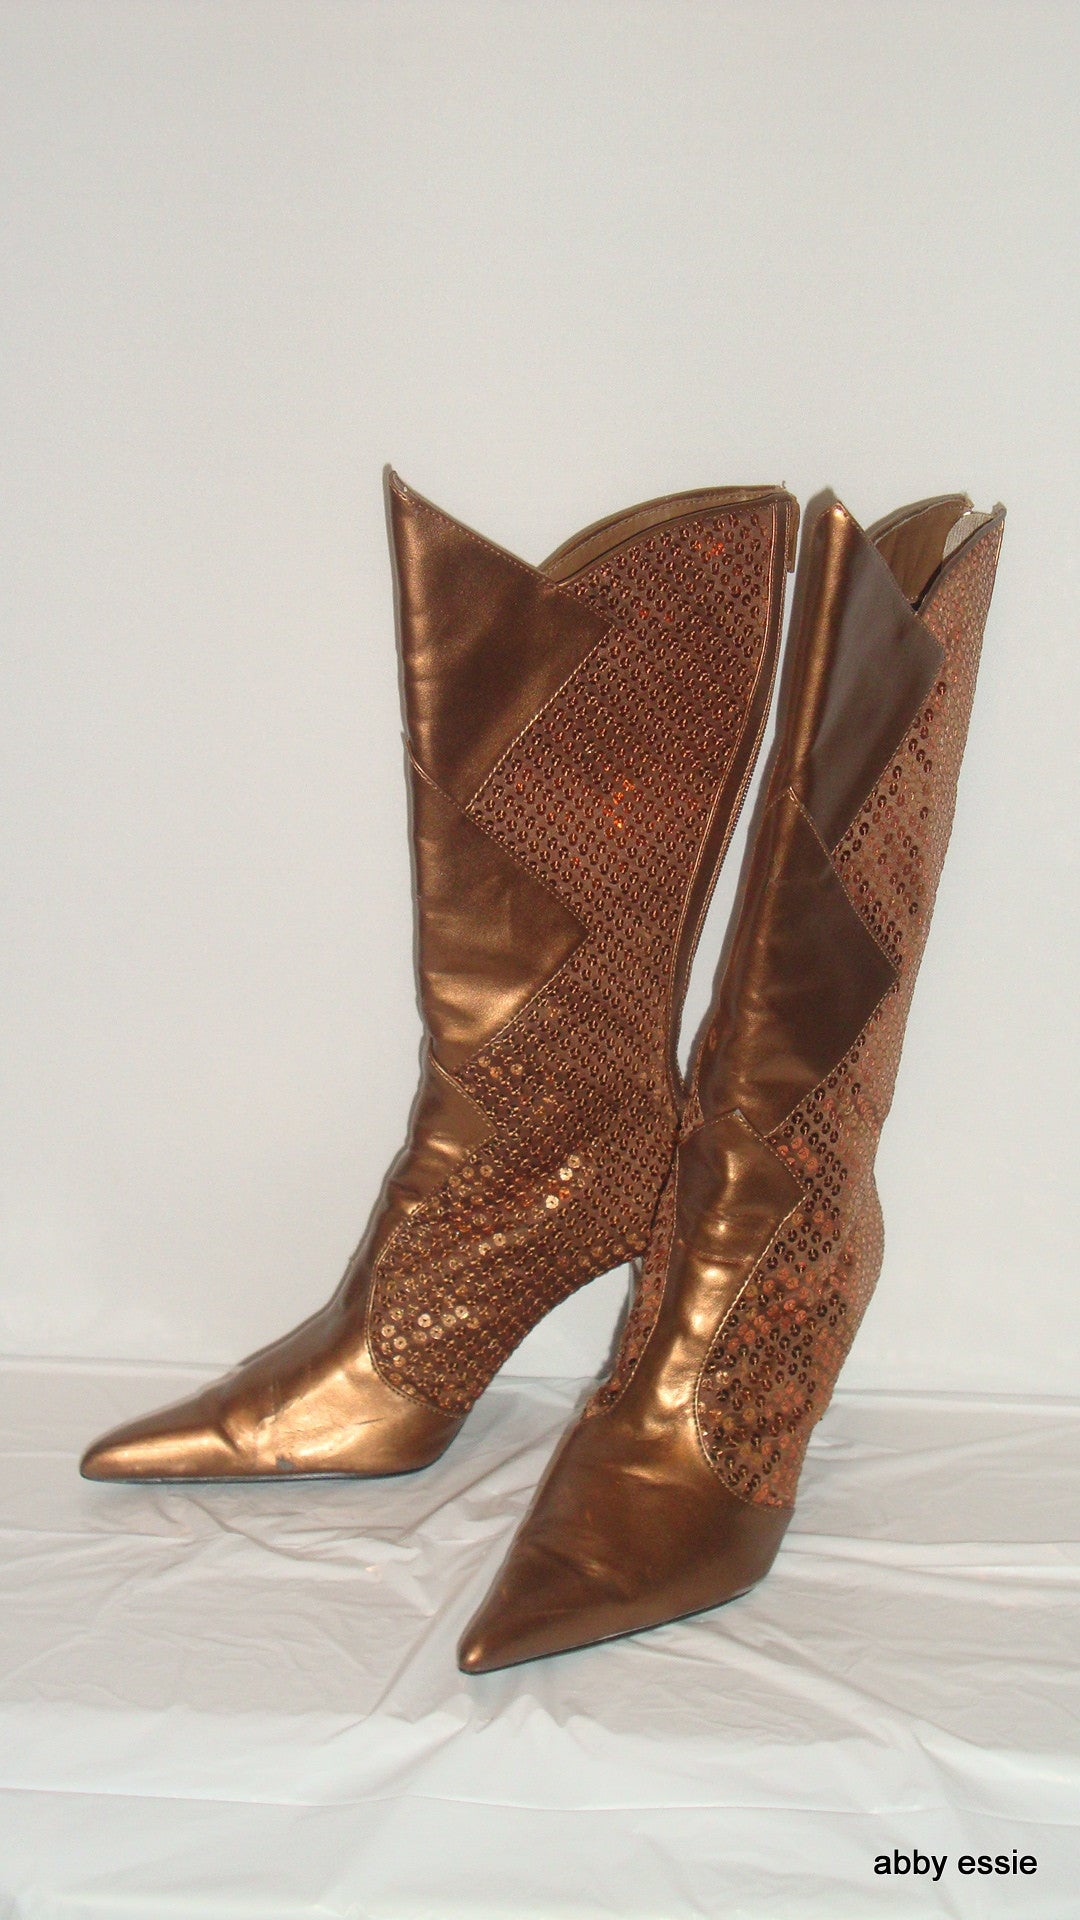 Paprika Bronze Brown Sequin Rocker Club Go-Go Stiletto Boots 8.5